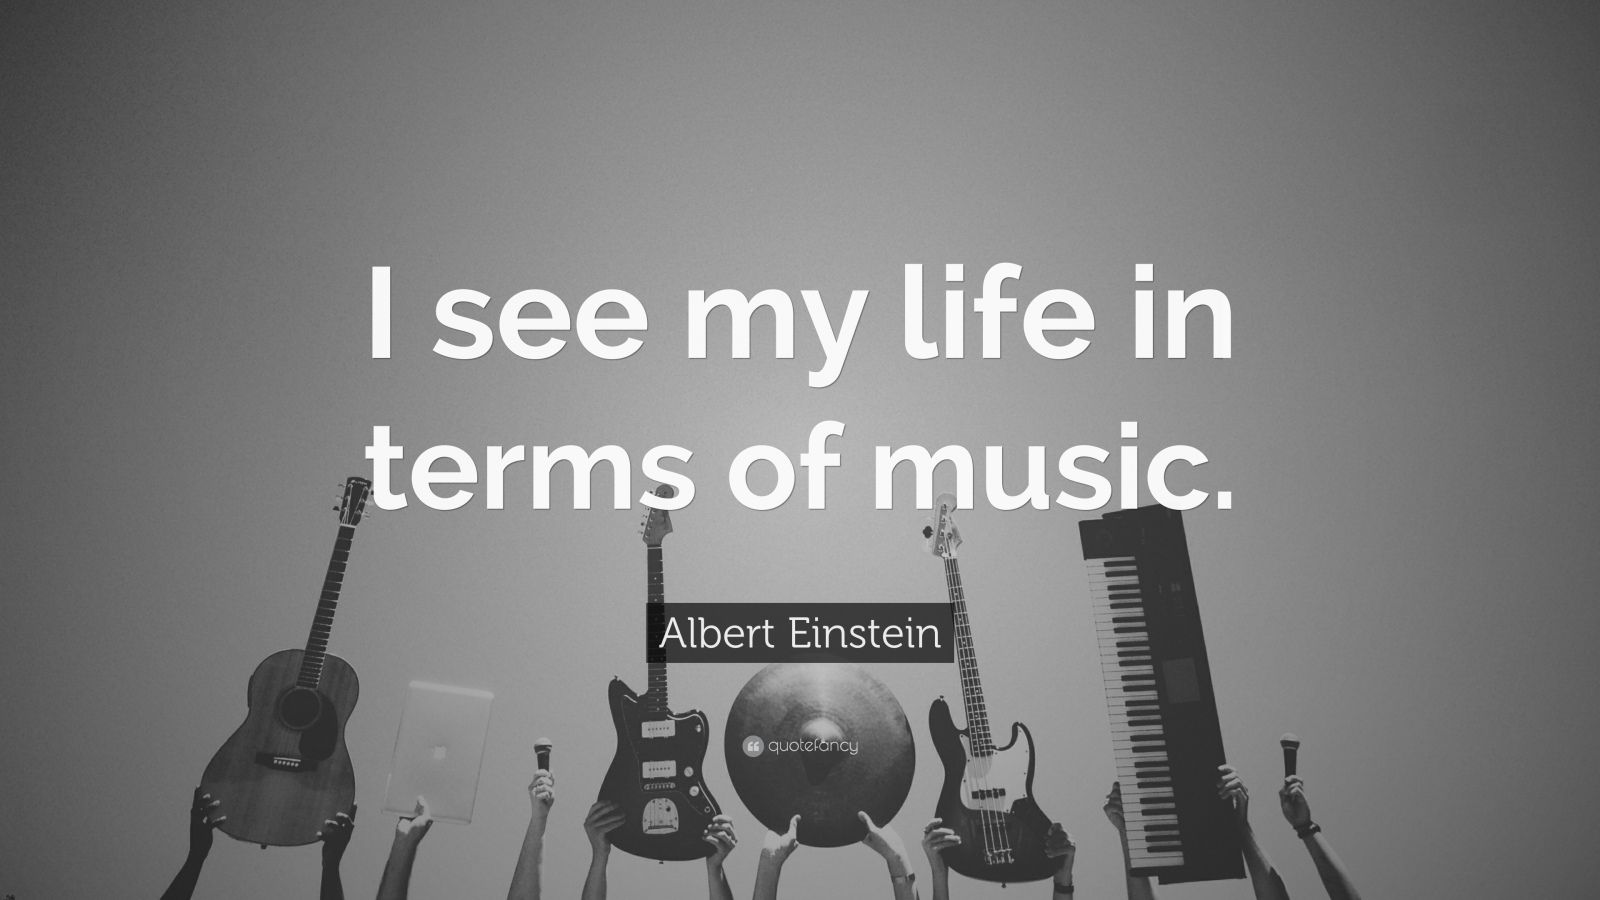 Inspirational Quotes About Music And Life Albert Einstein Quotes 100 Wallpapers  Quotefancy